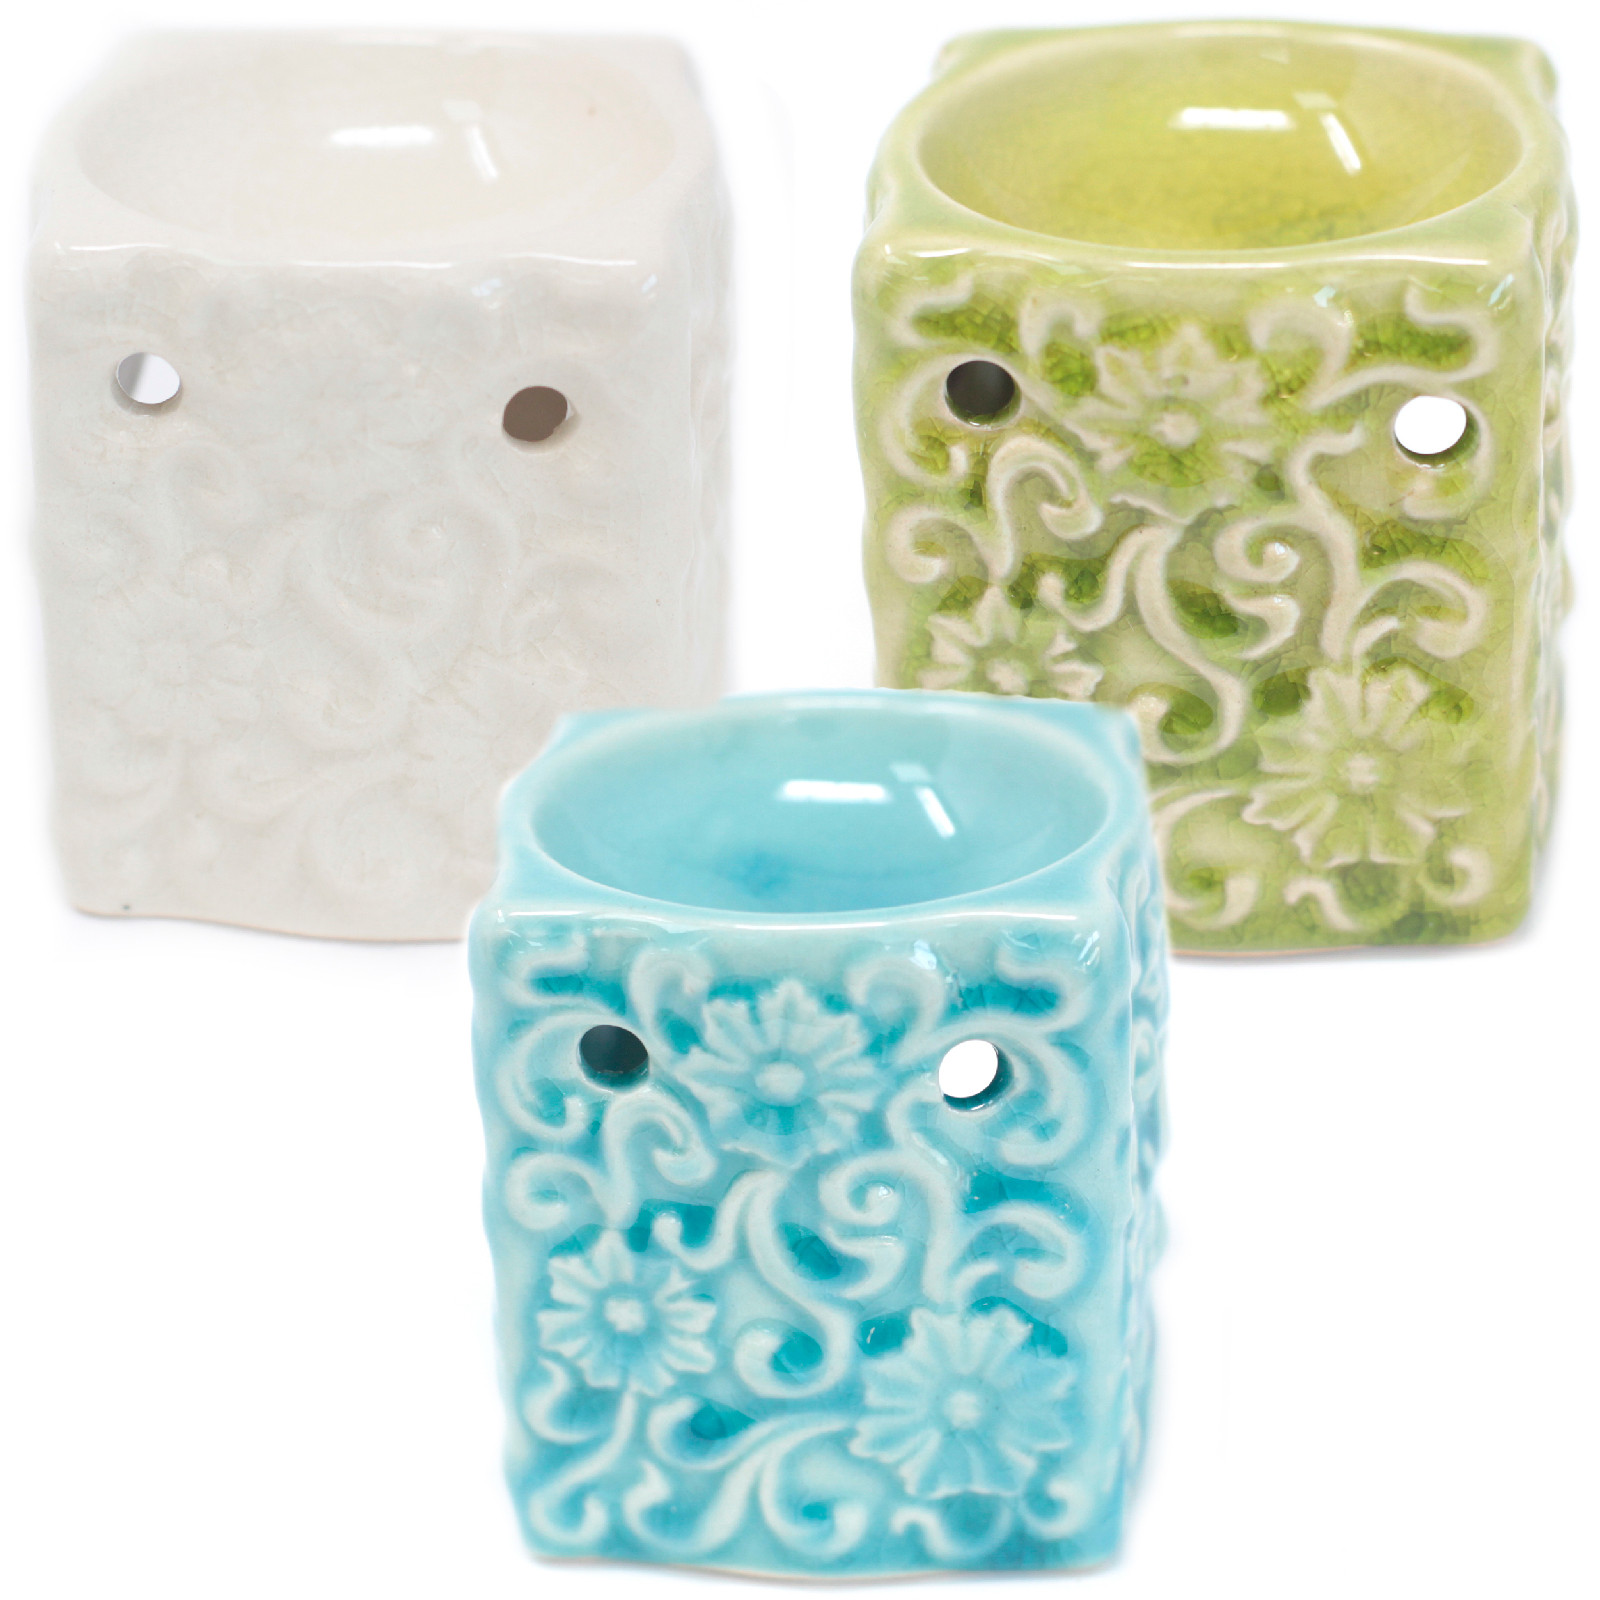 Classic Small Square Floral Oil Burners aast